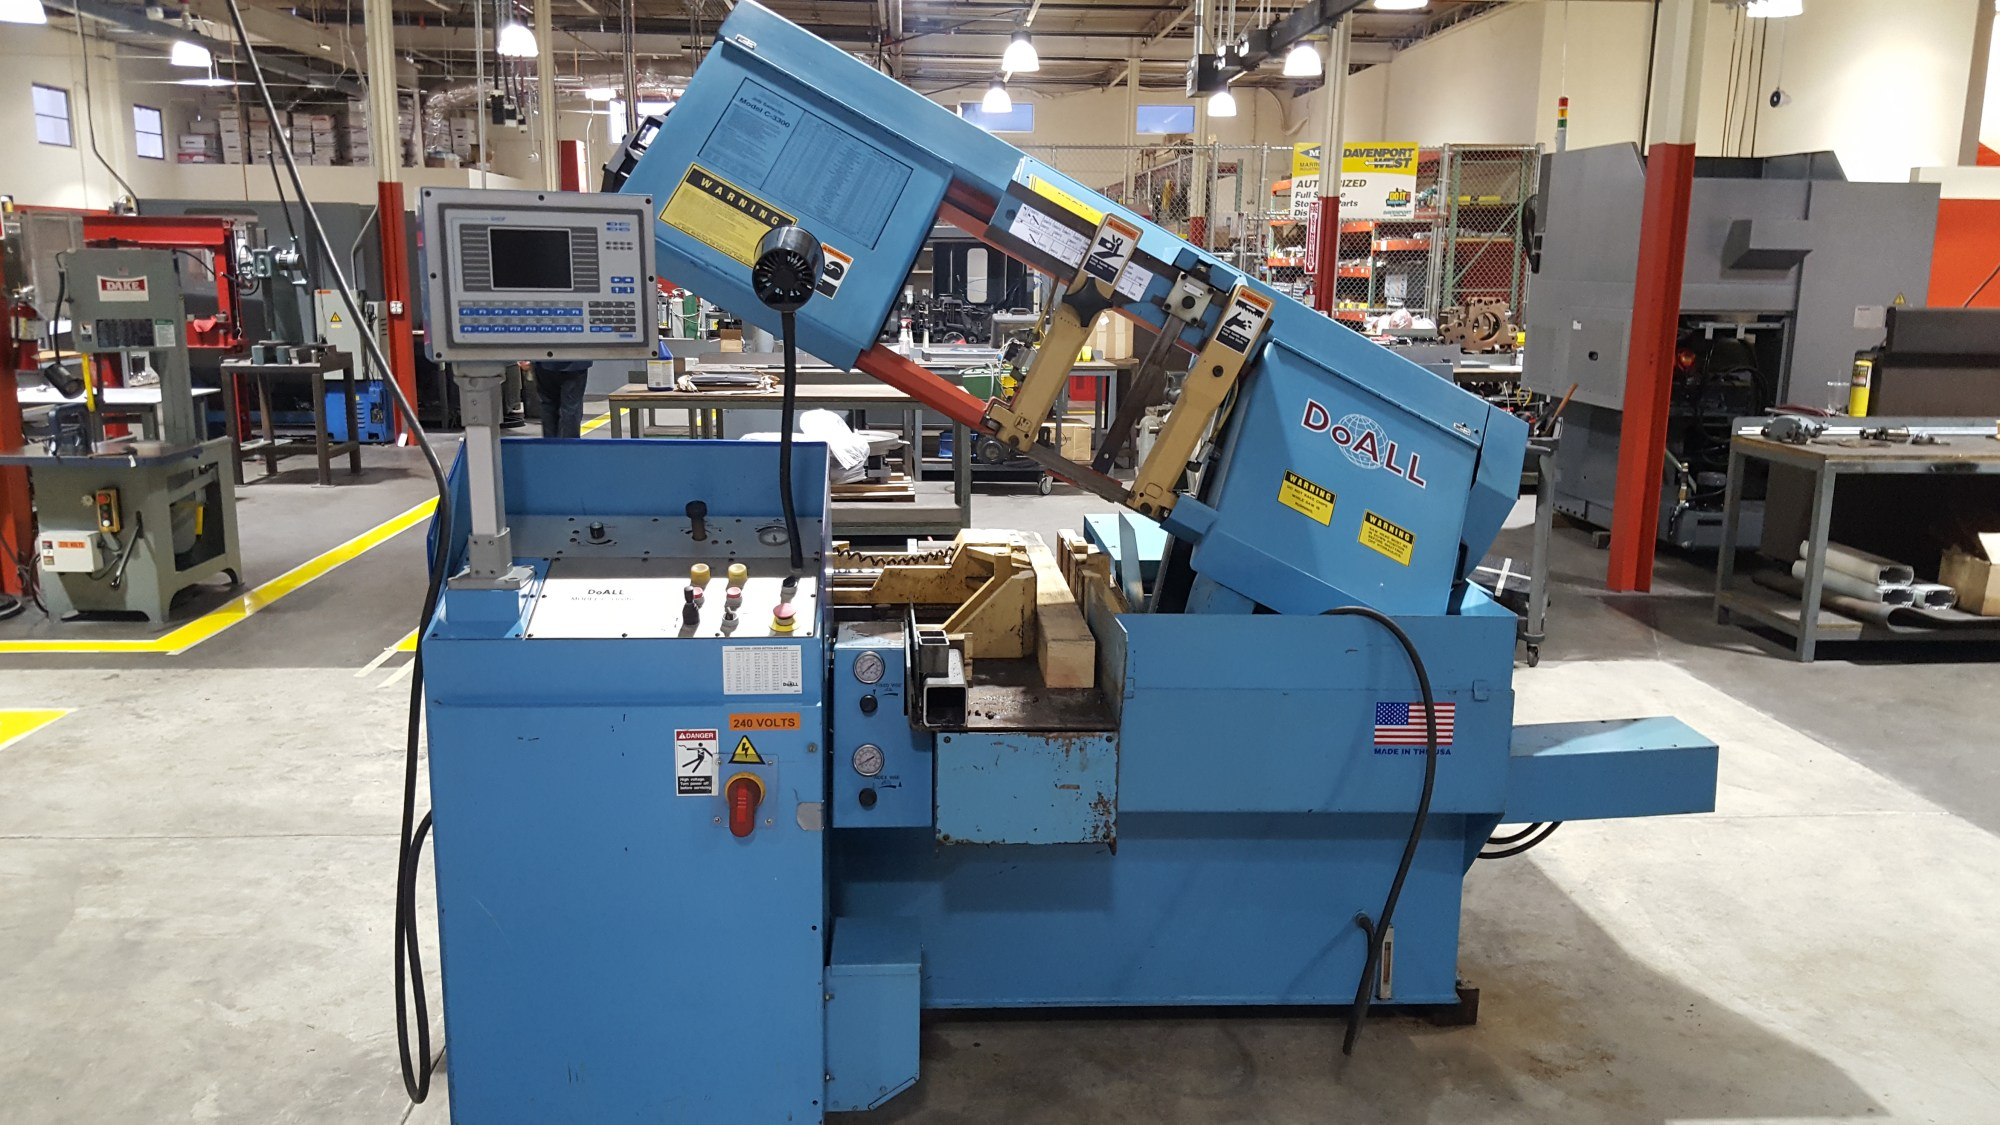 hight resolution of do all model c 3300 nc band saw